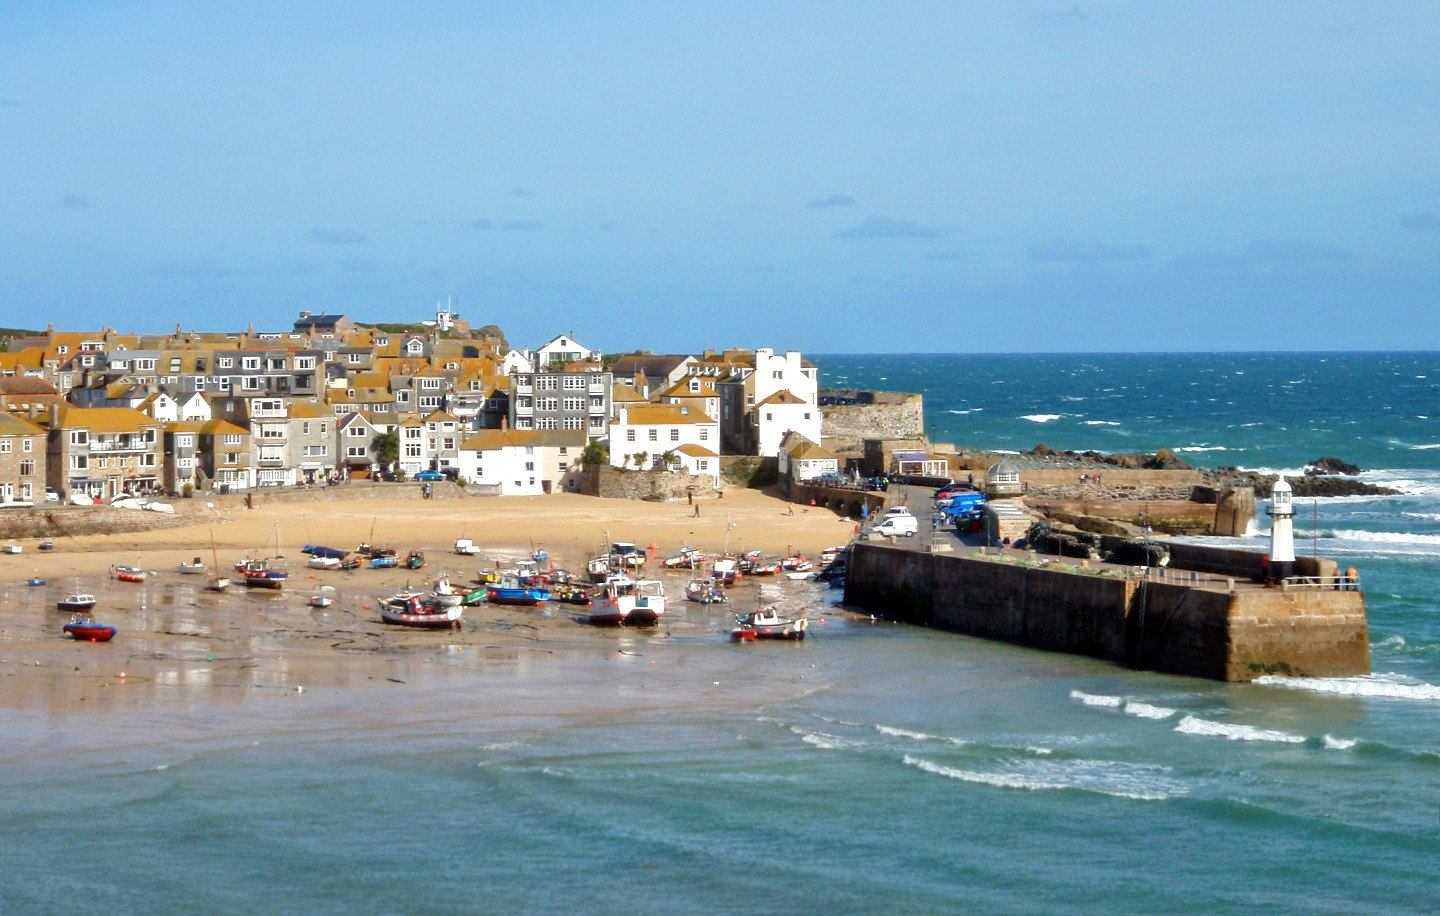 A weekend itinerary for St Ives, Cornwall